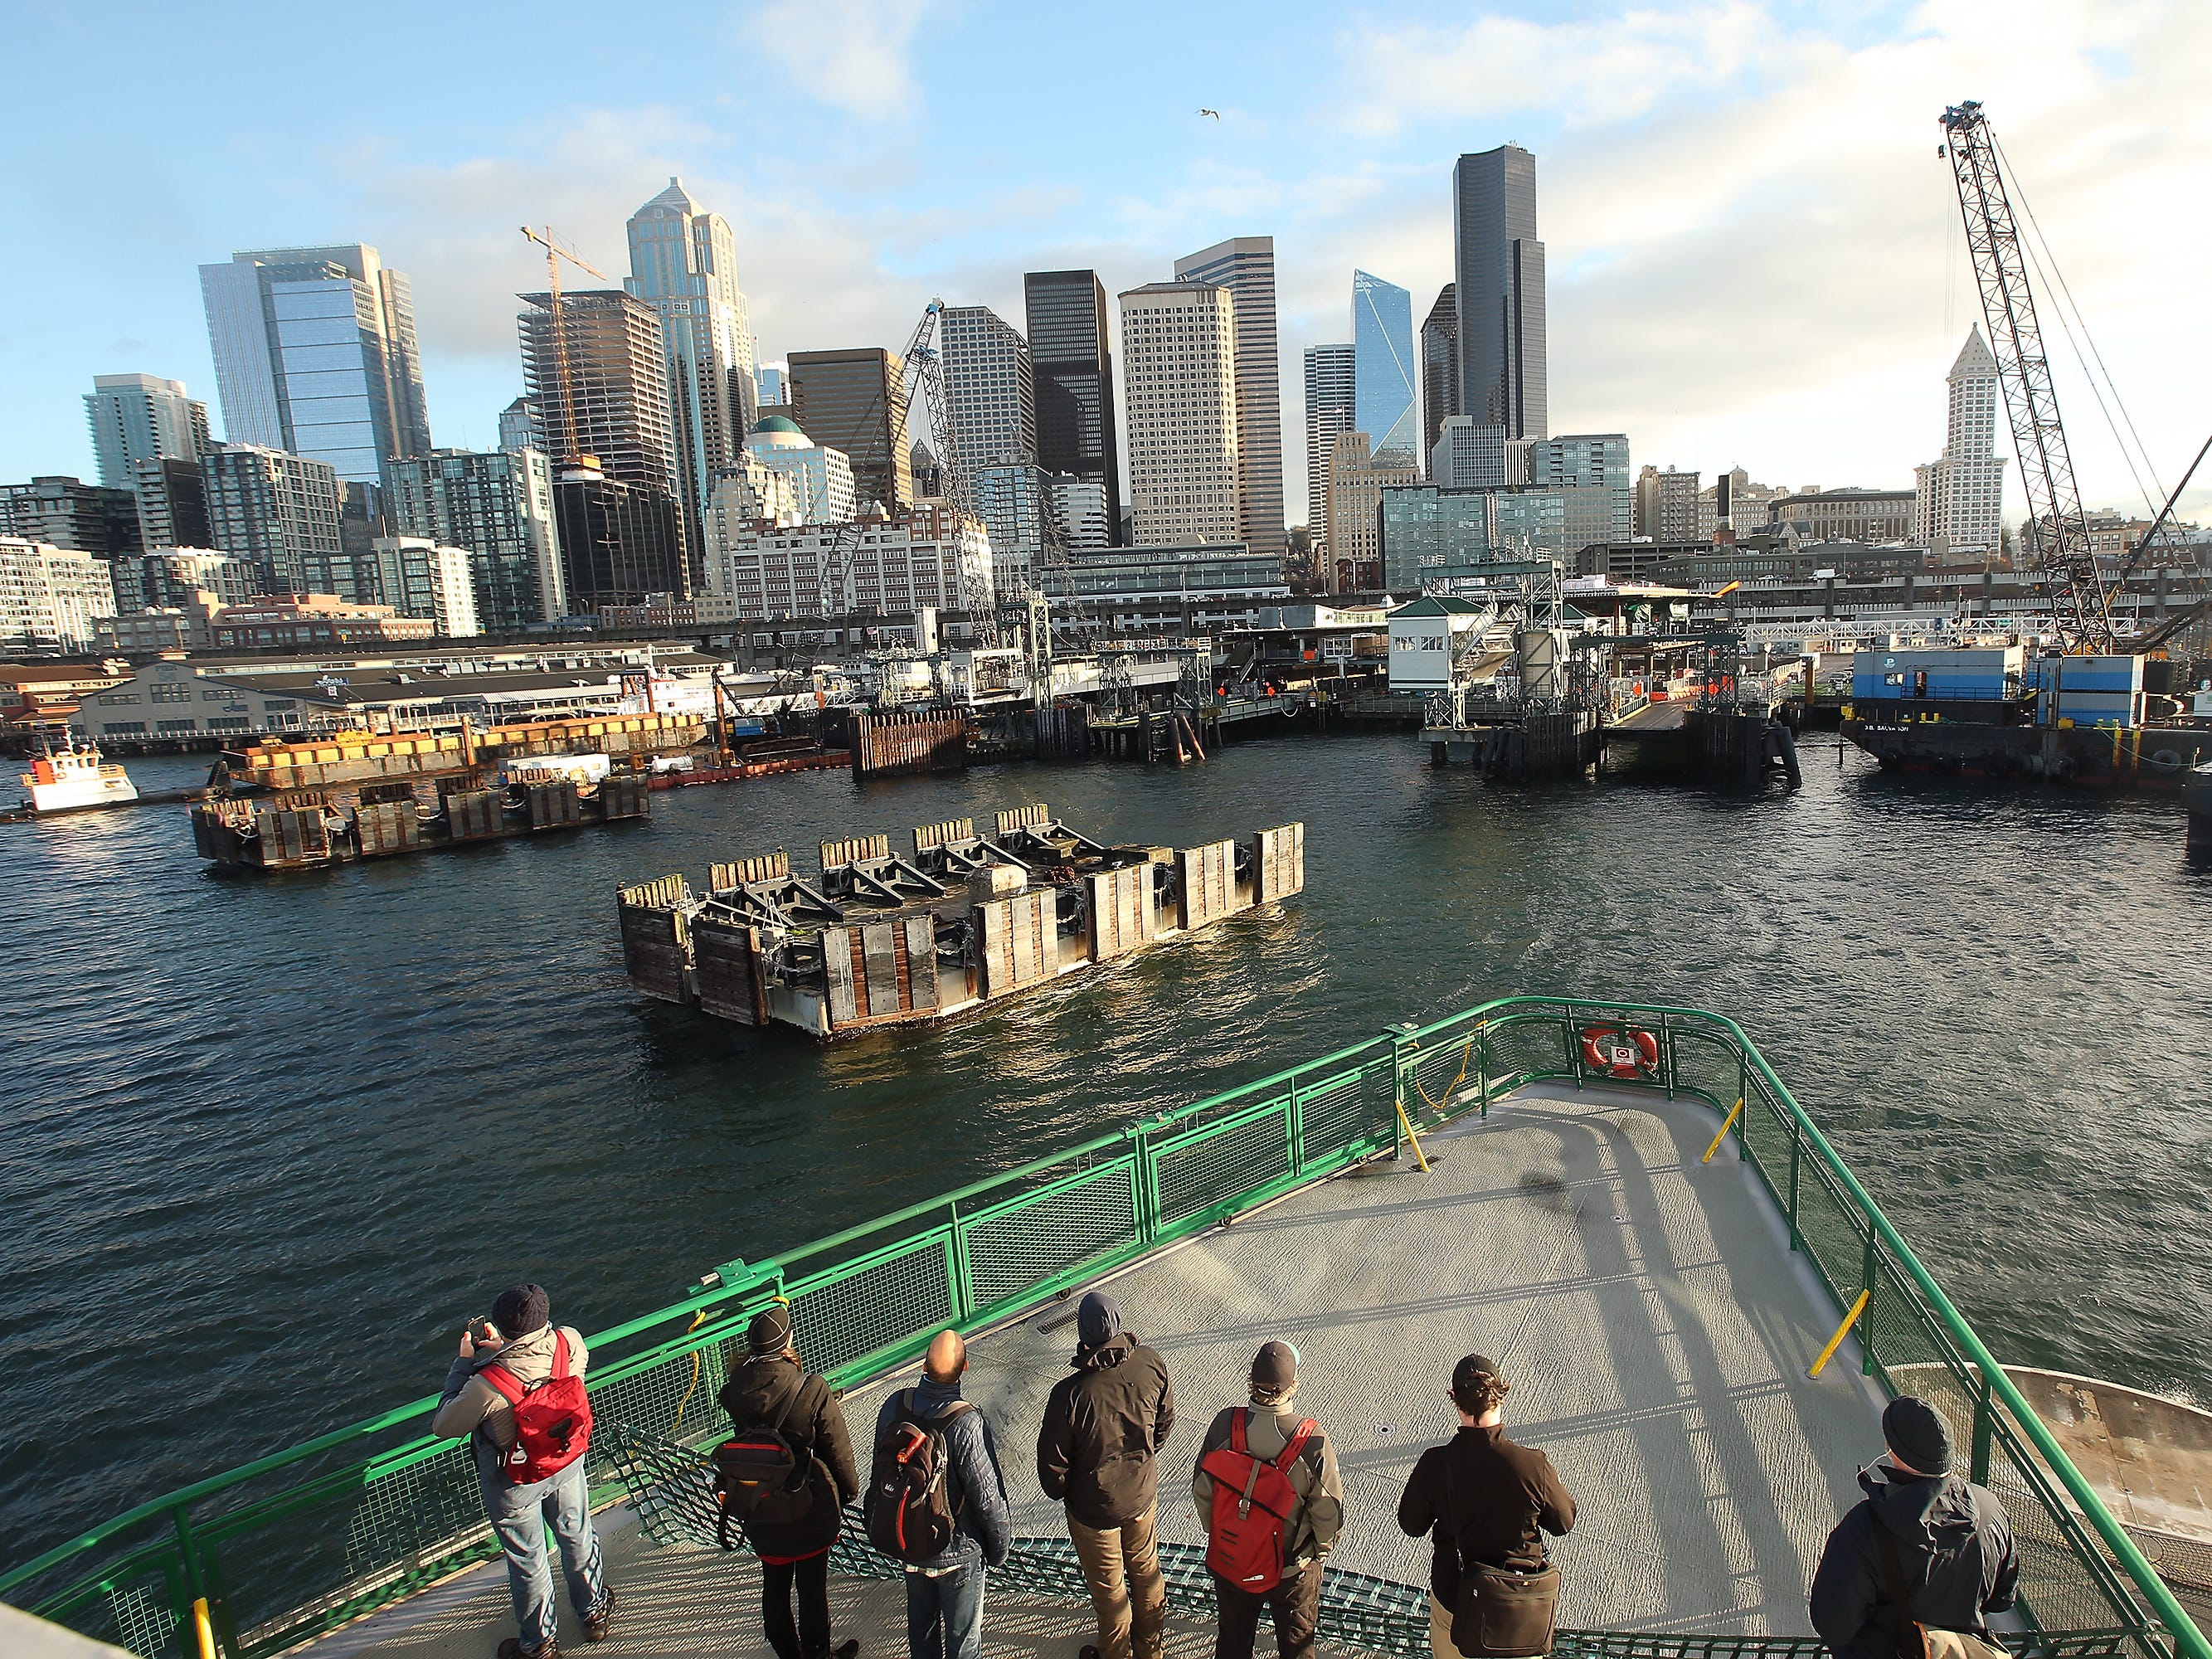 Ferry riders take in the construction and skyline view as the M/V Puyallup heads for Coleman Dock in Seattle on Friday, January 4, 2019.